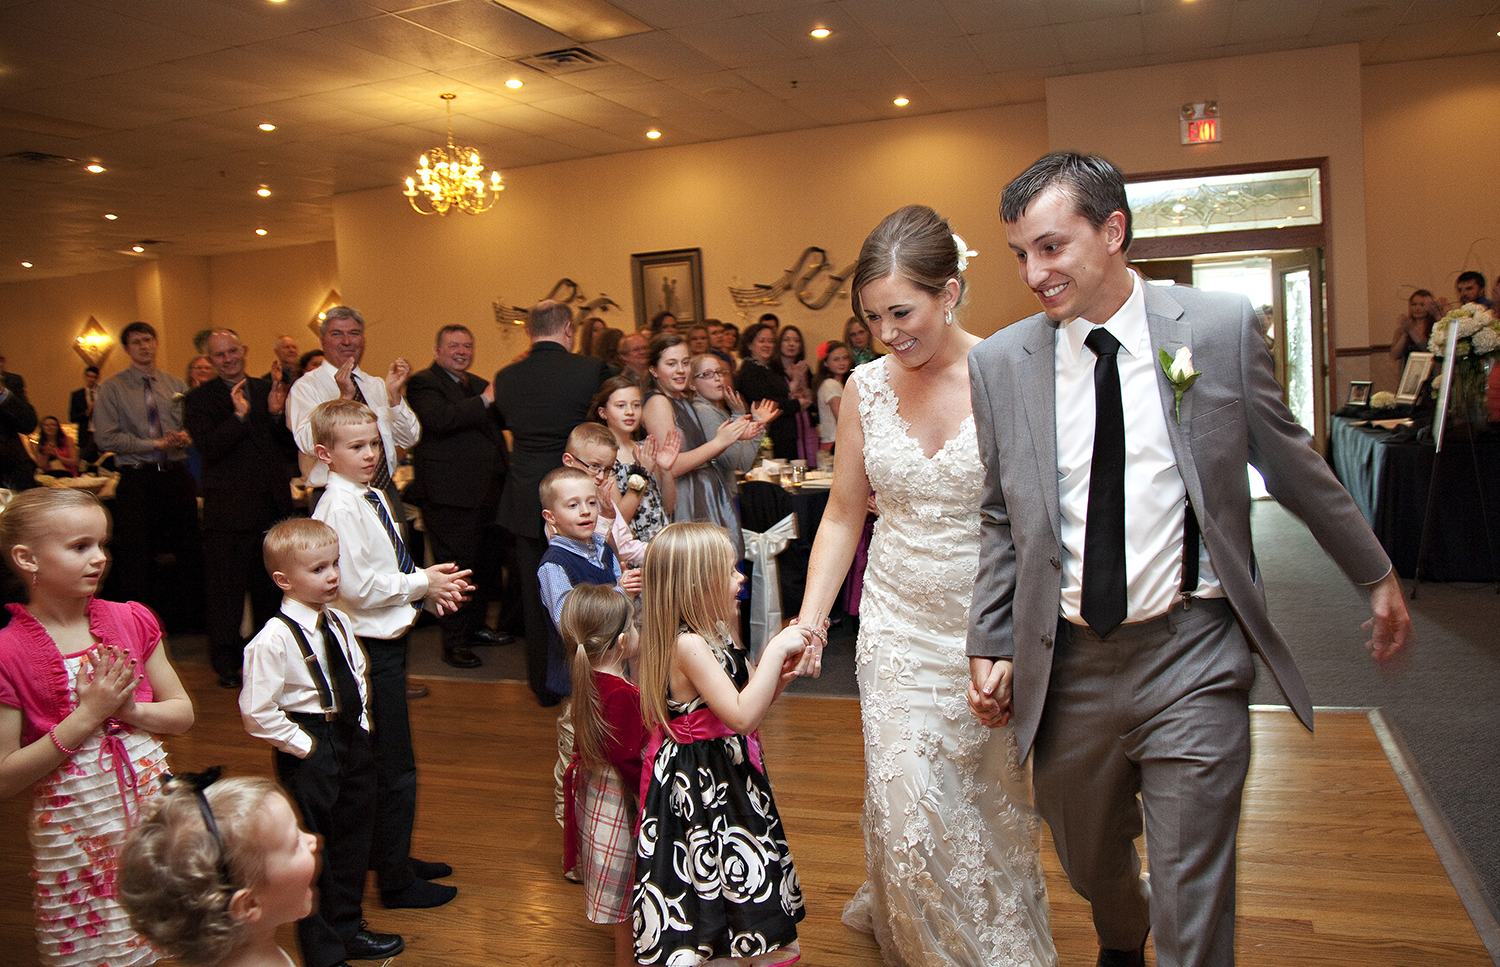 St Henry Ohio, Romer's Catering, reception photography, storytelling photography